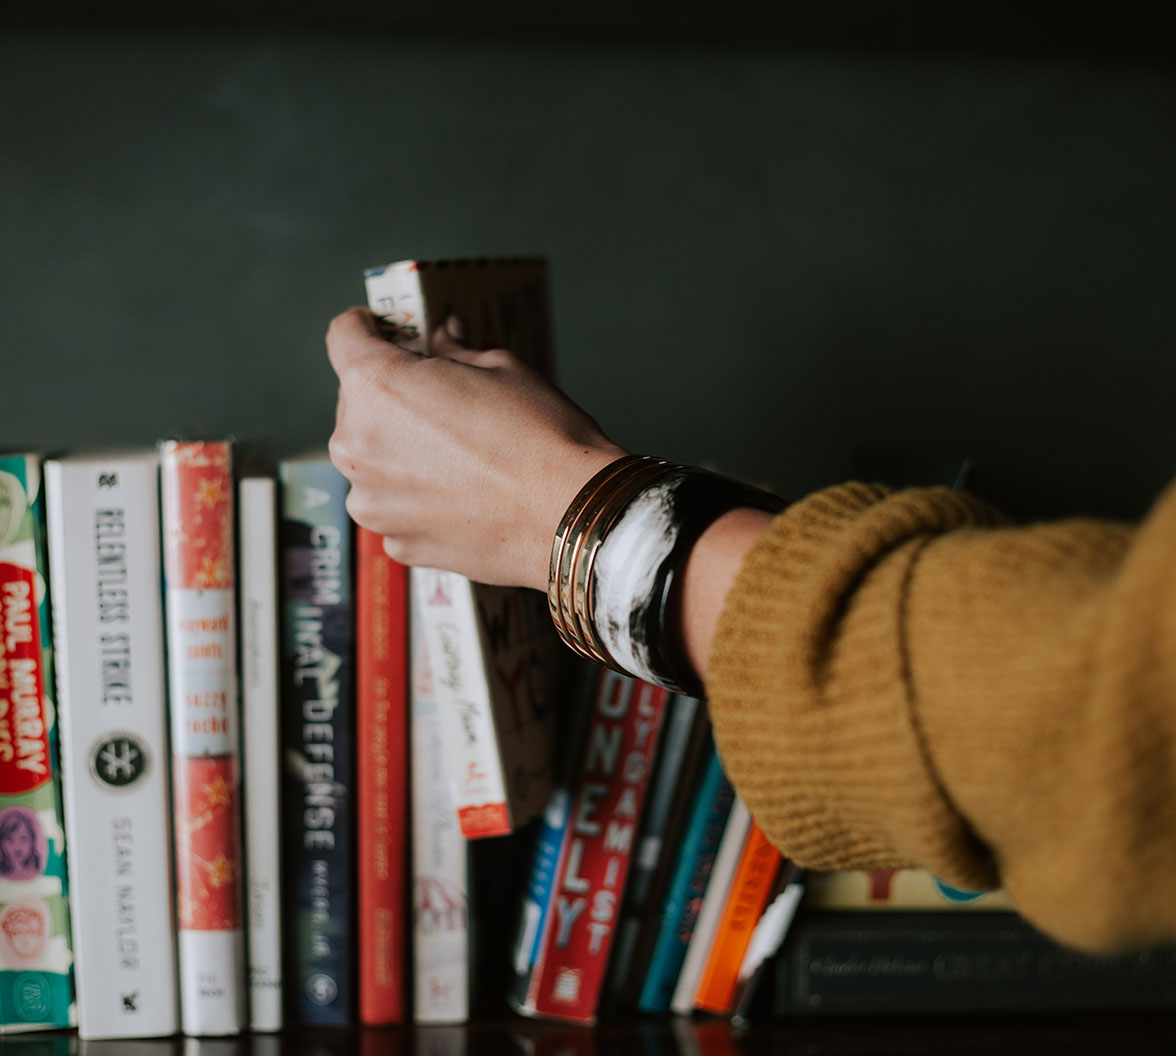 A picture of diffrent books and a hand holding one